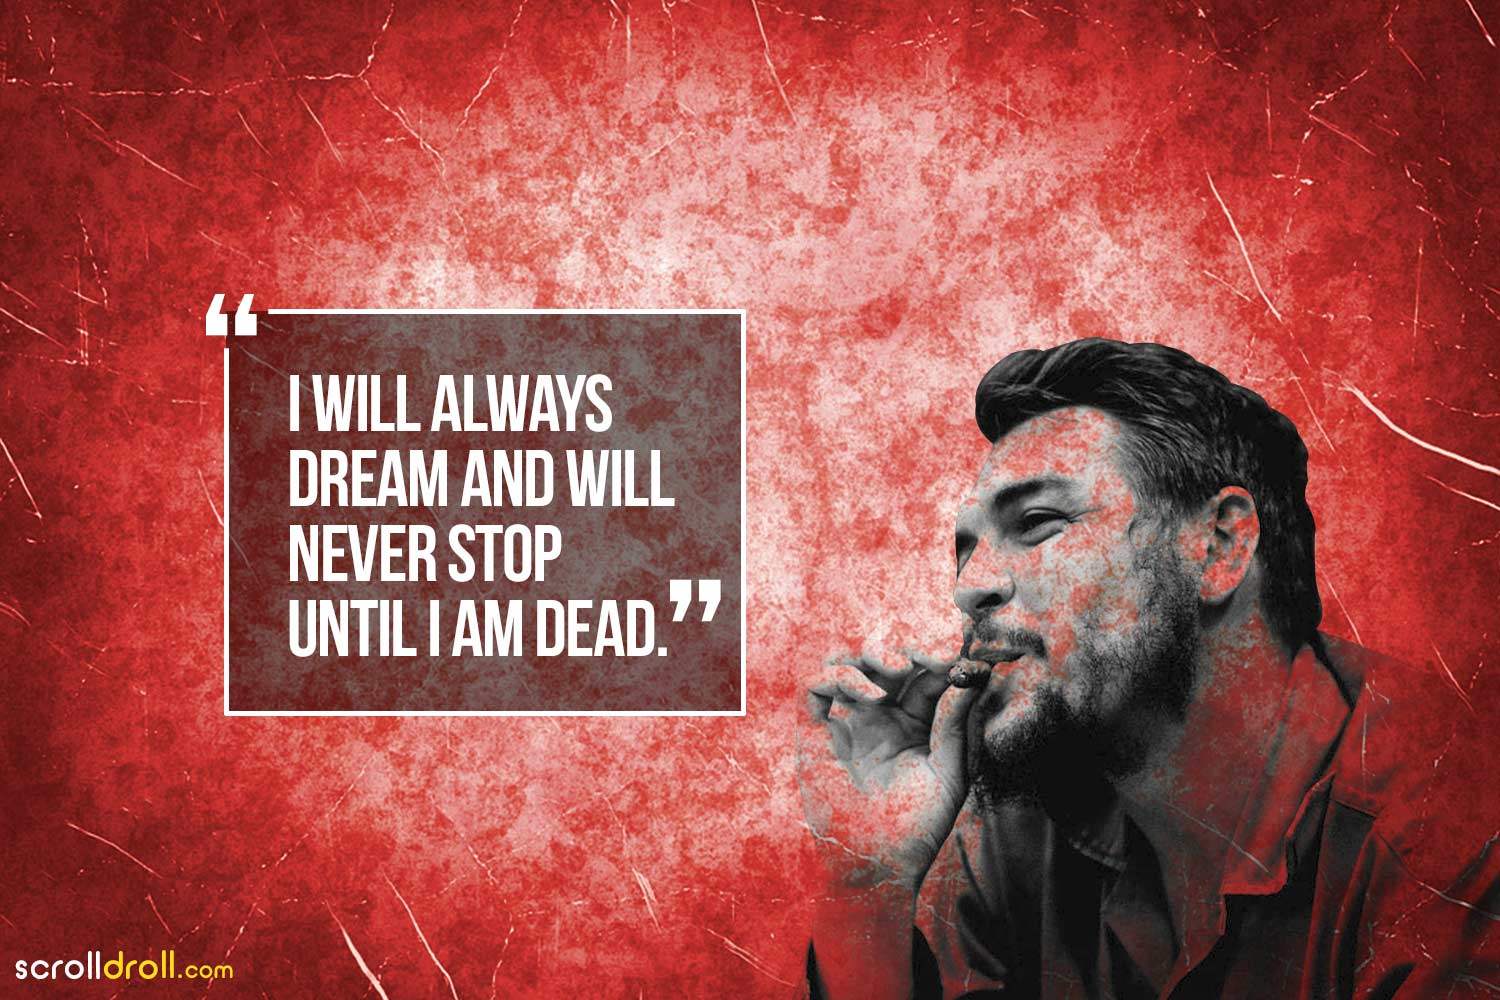 I will always dream and will never stop until i am dead-Che Guevara